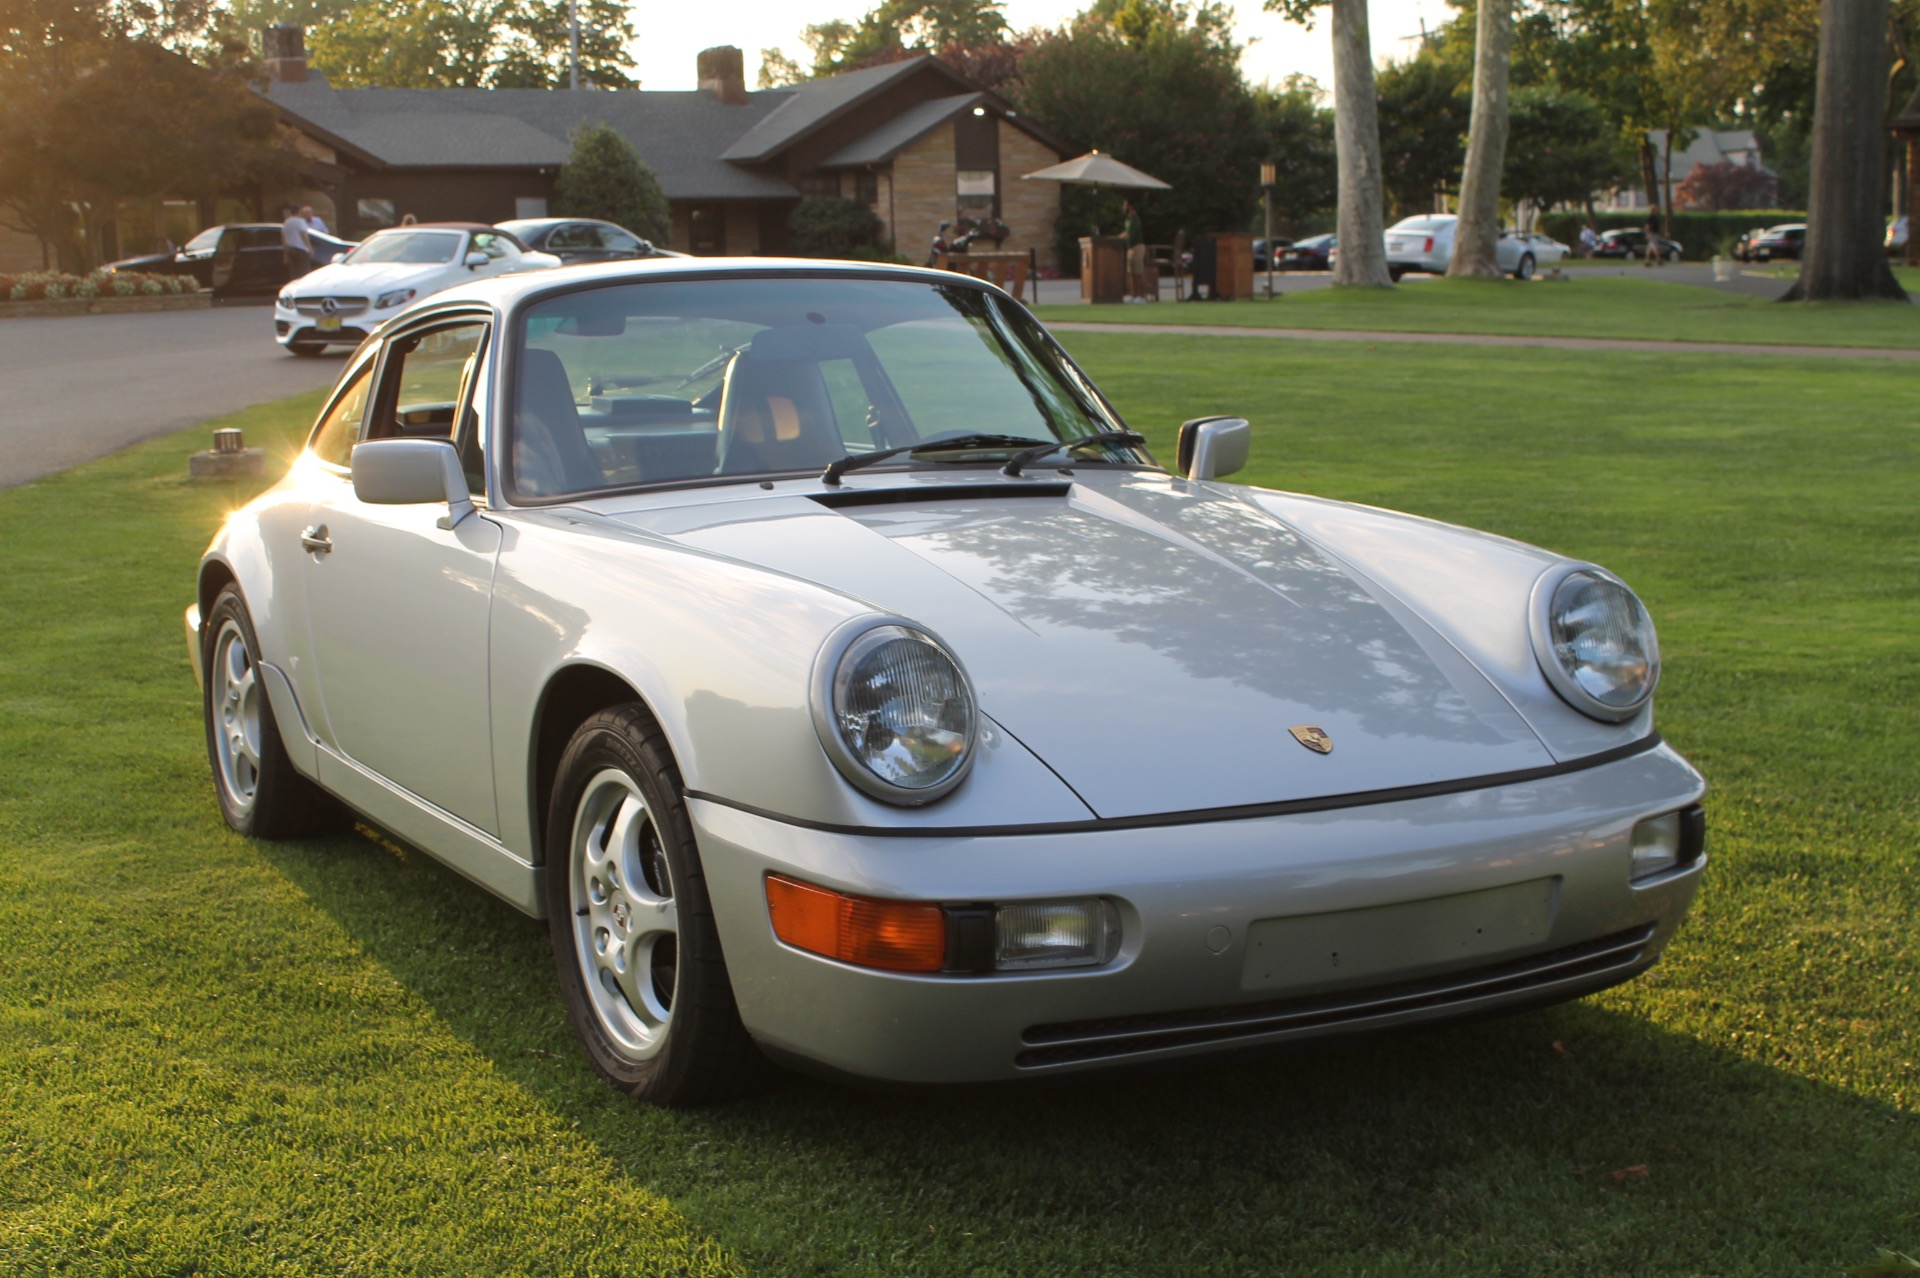 Used-1989-Porsche-911-Carrera-4